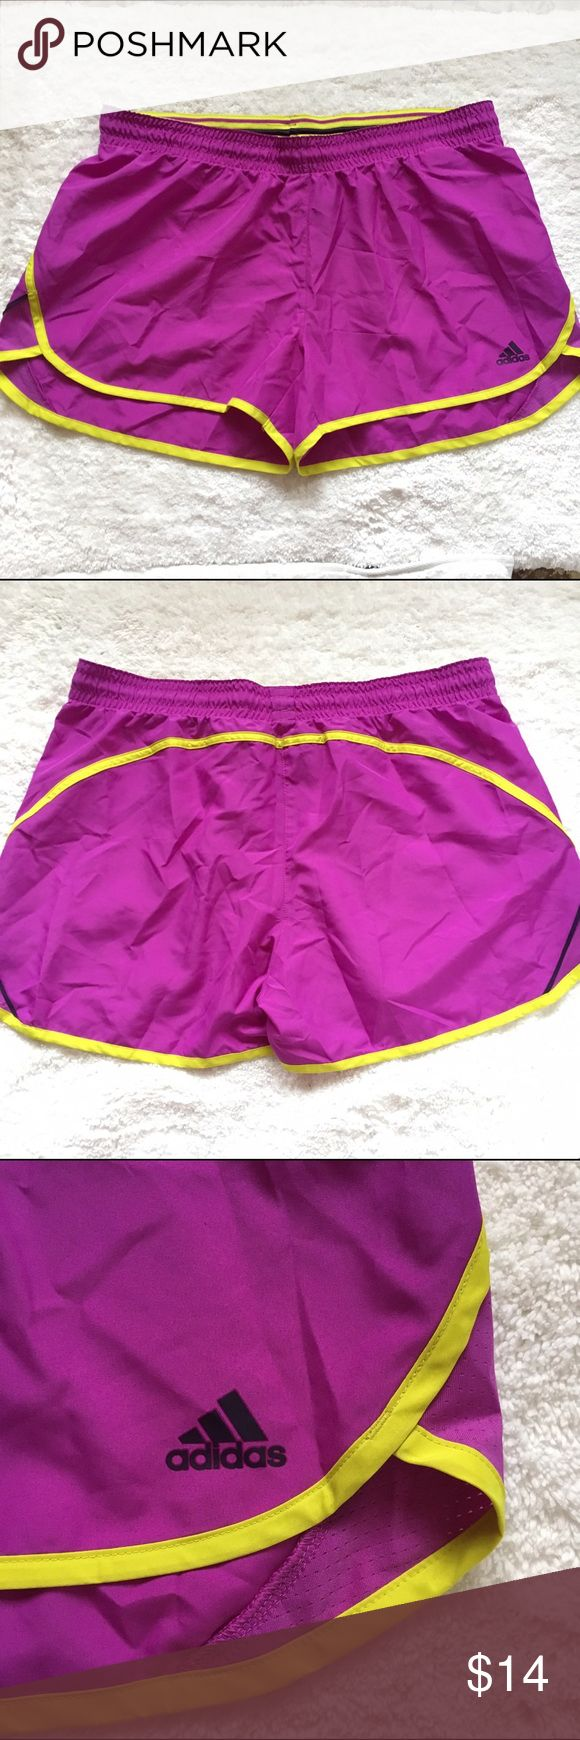 NWOT Adidas purple workout shorts sz L Adidas Workout shorts womens size large. With adjustable drawstring waist. The style is climalite performance fitness blitz short. Purple and yellow. They are 100% polyester. The shorts are NEW without tags. Adidas Shorts